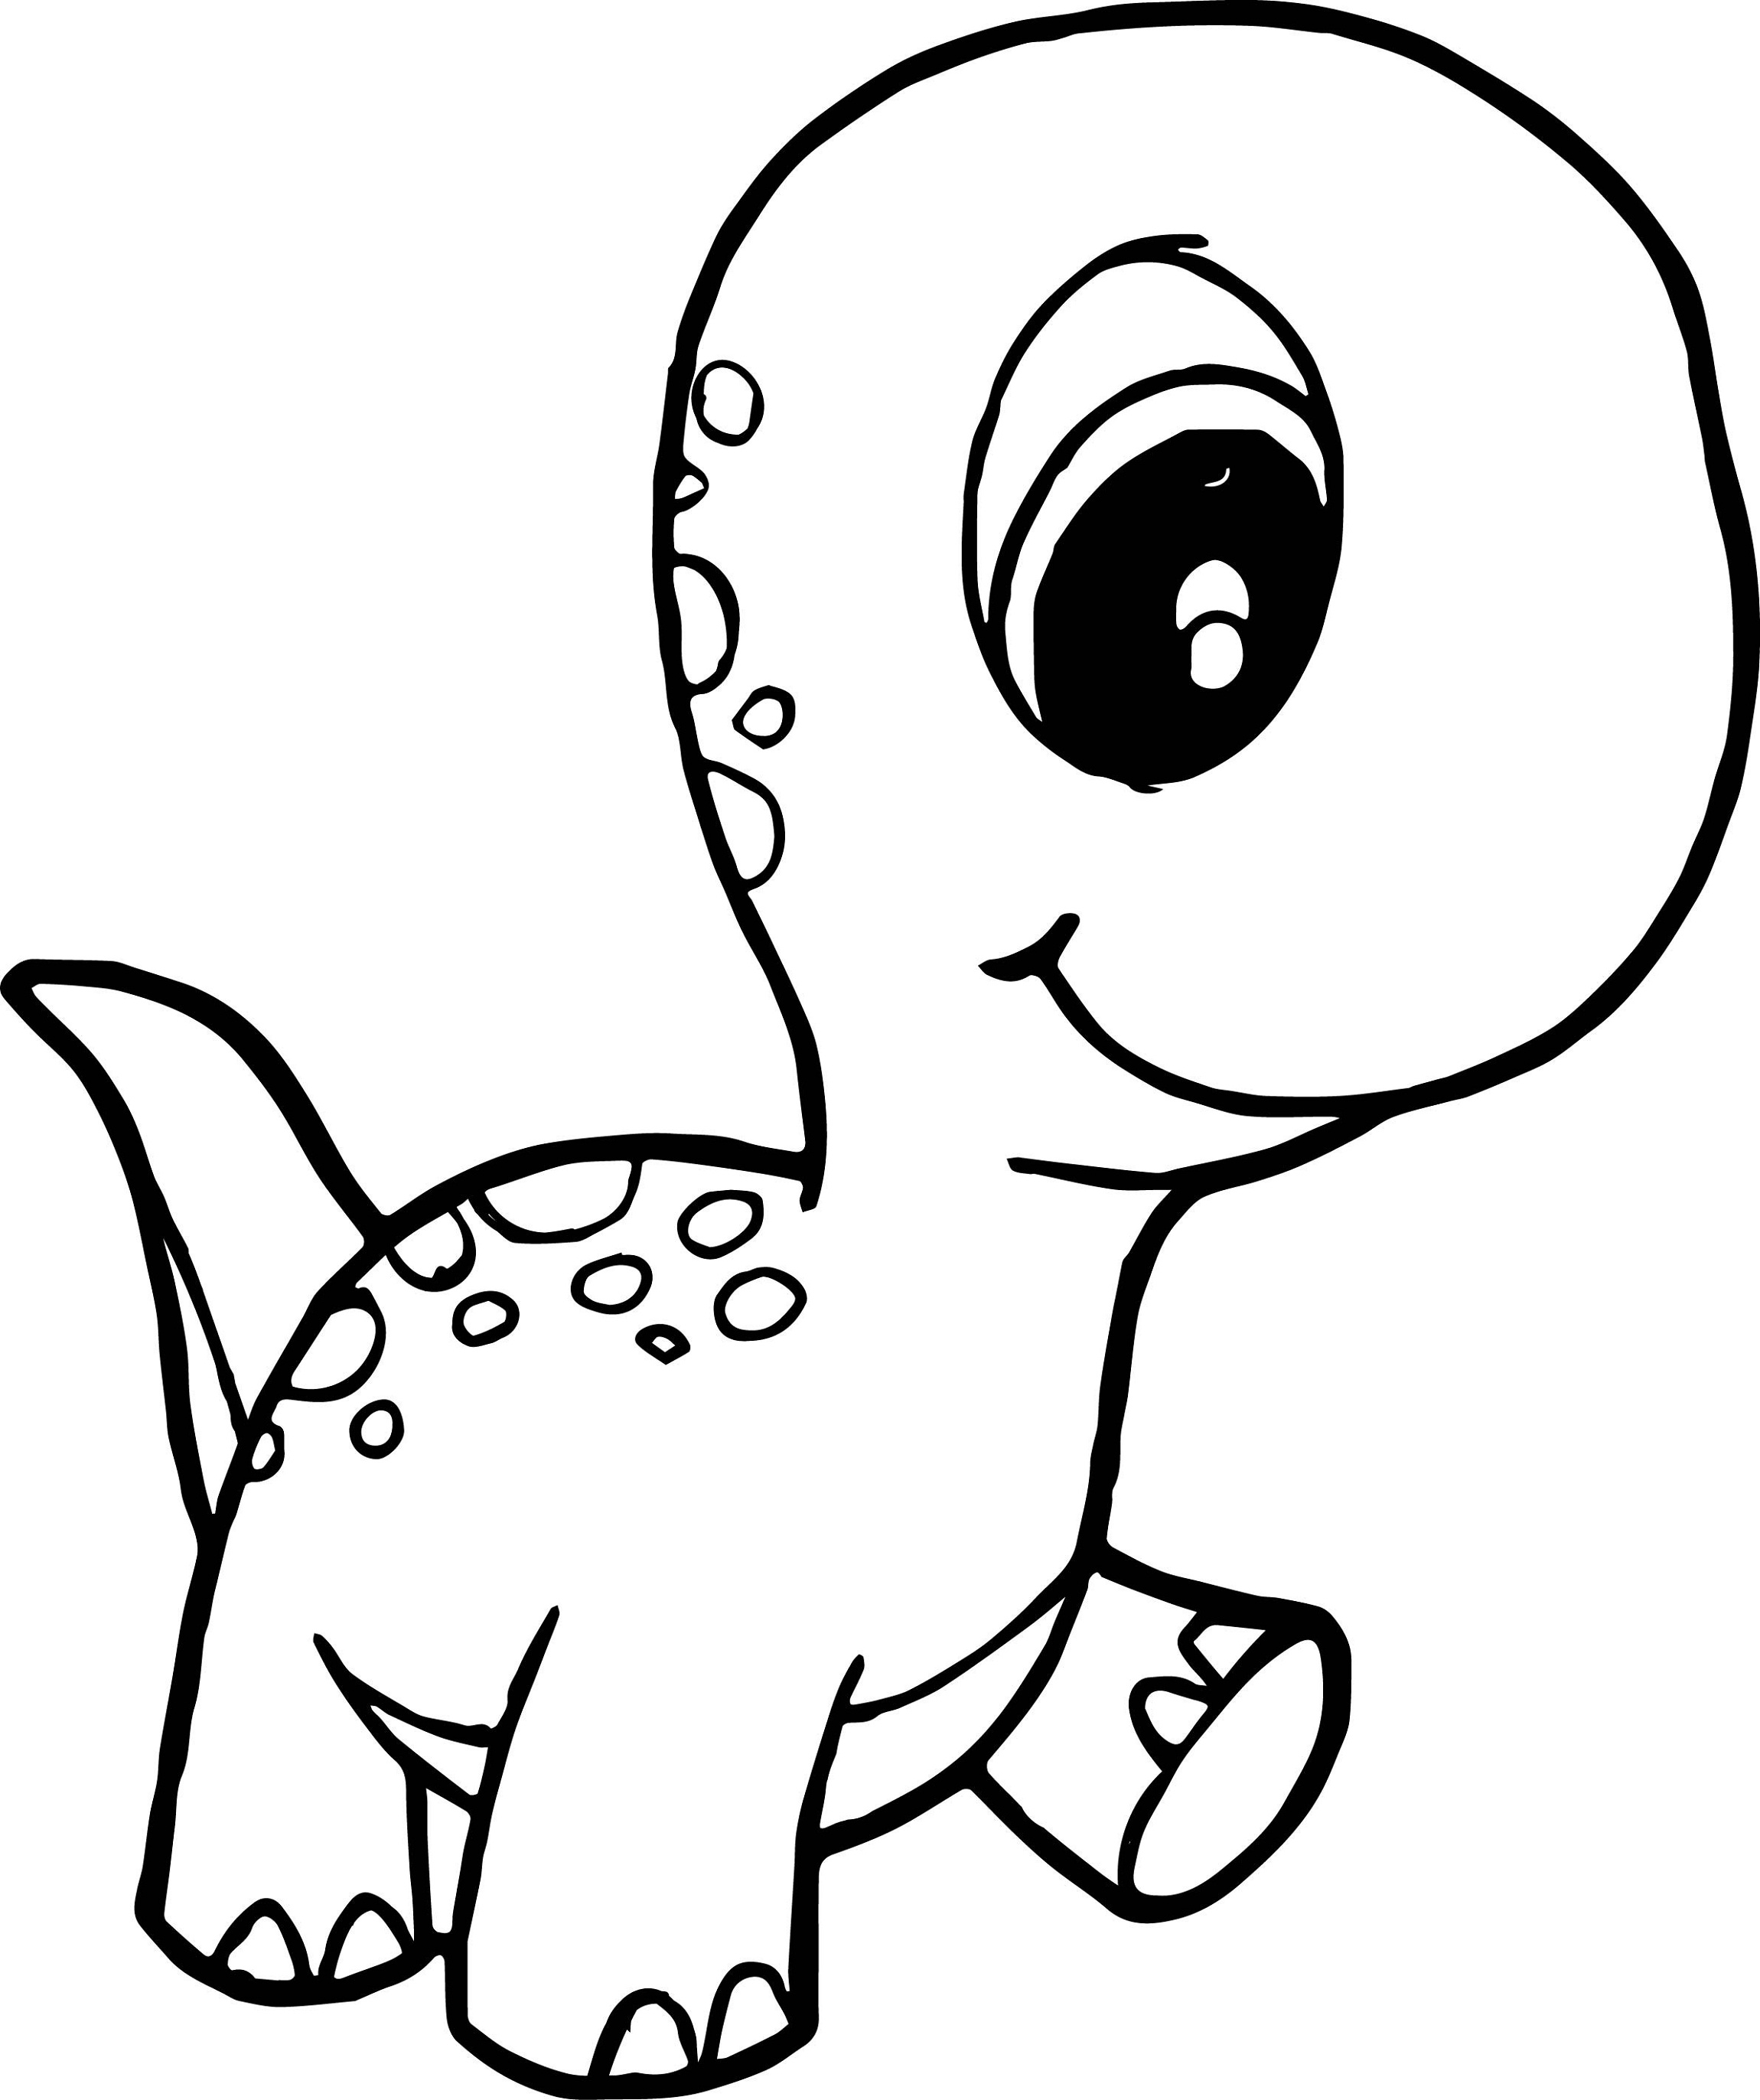 free dinosaur pictures baby dinosaur coloring pages for preschoolers activity pictures dinosaur free